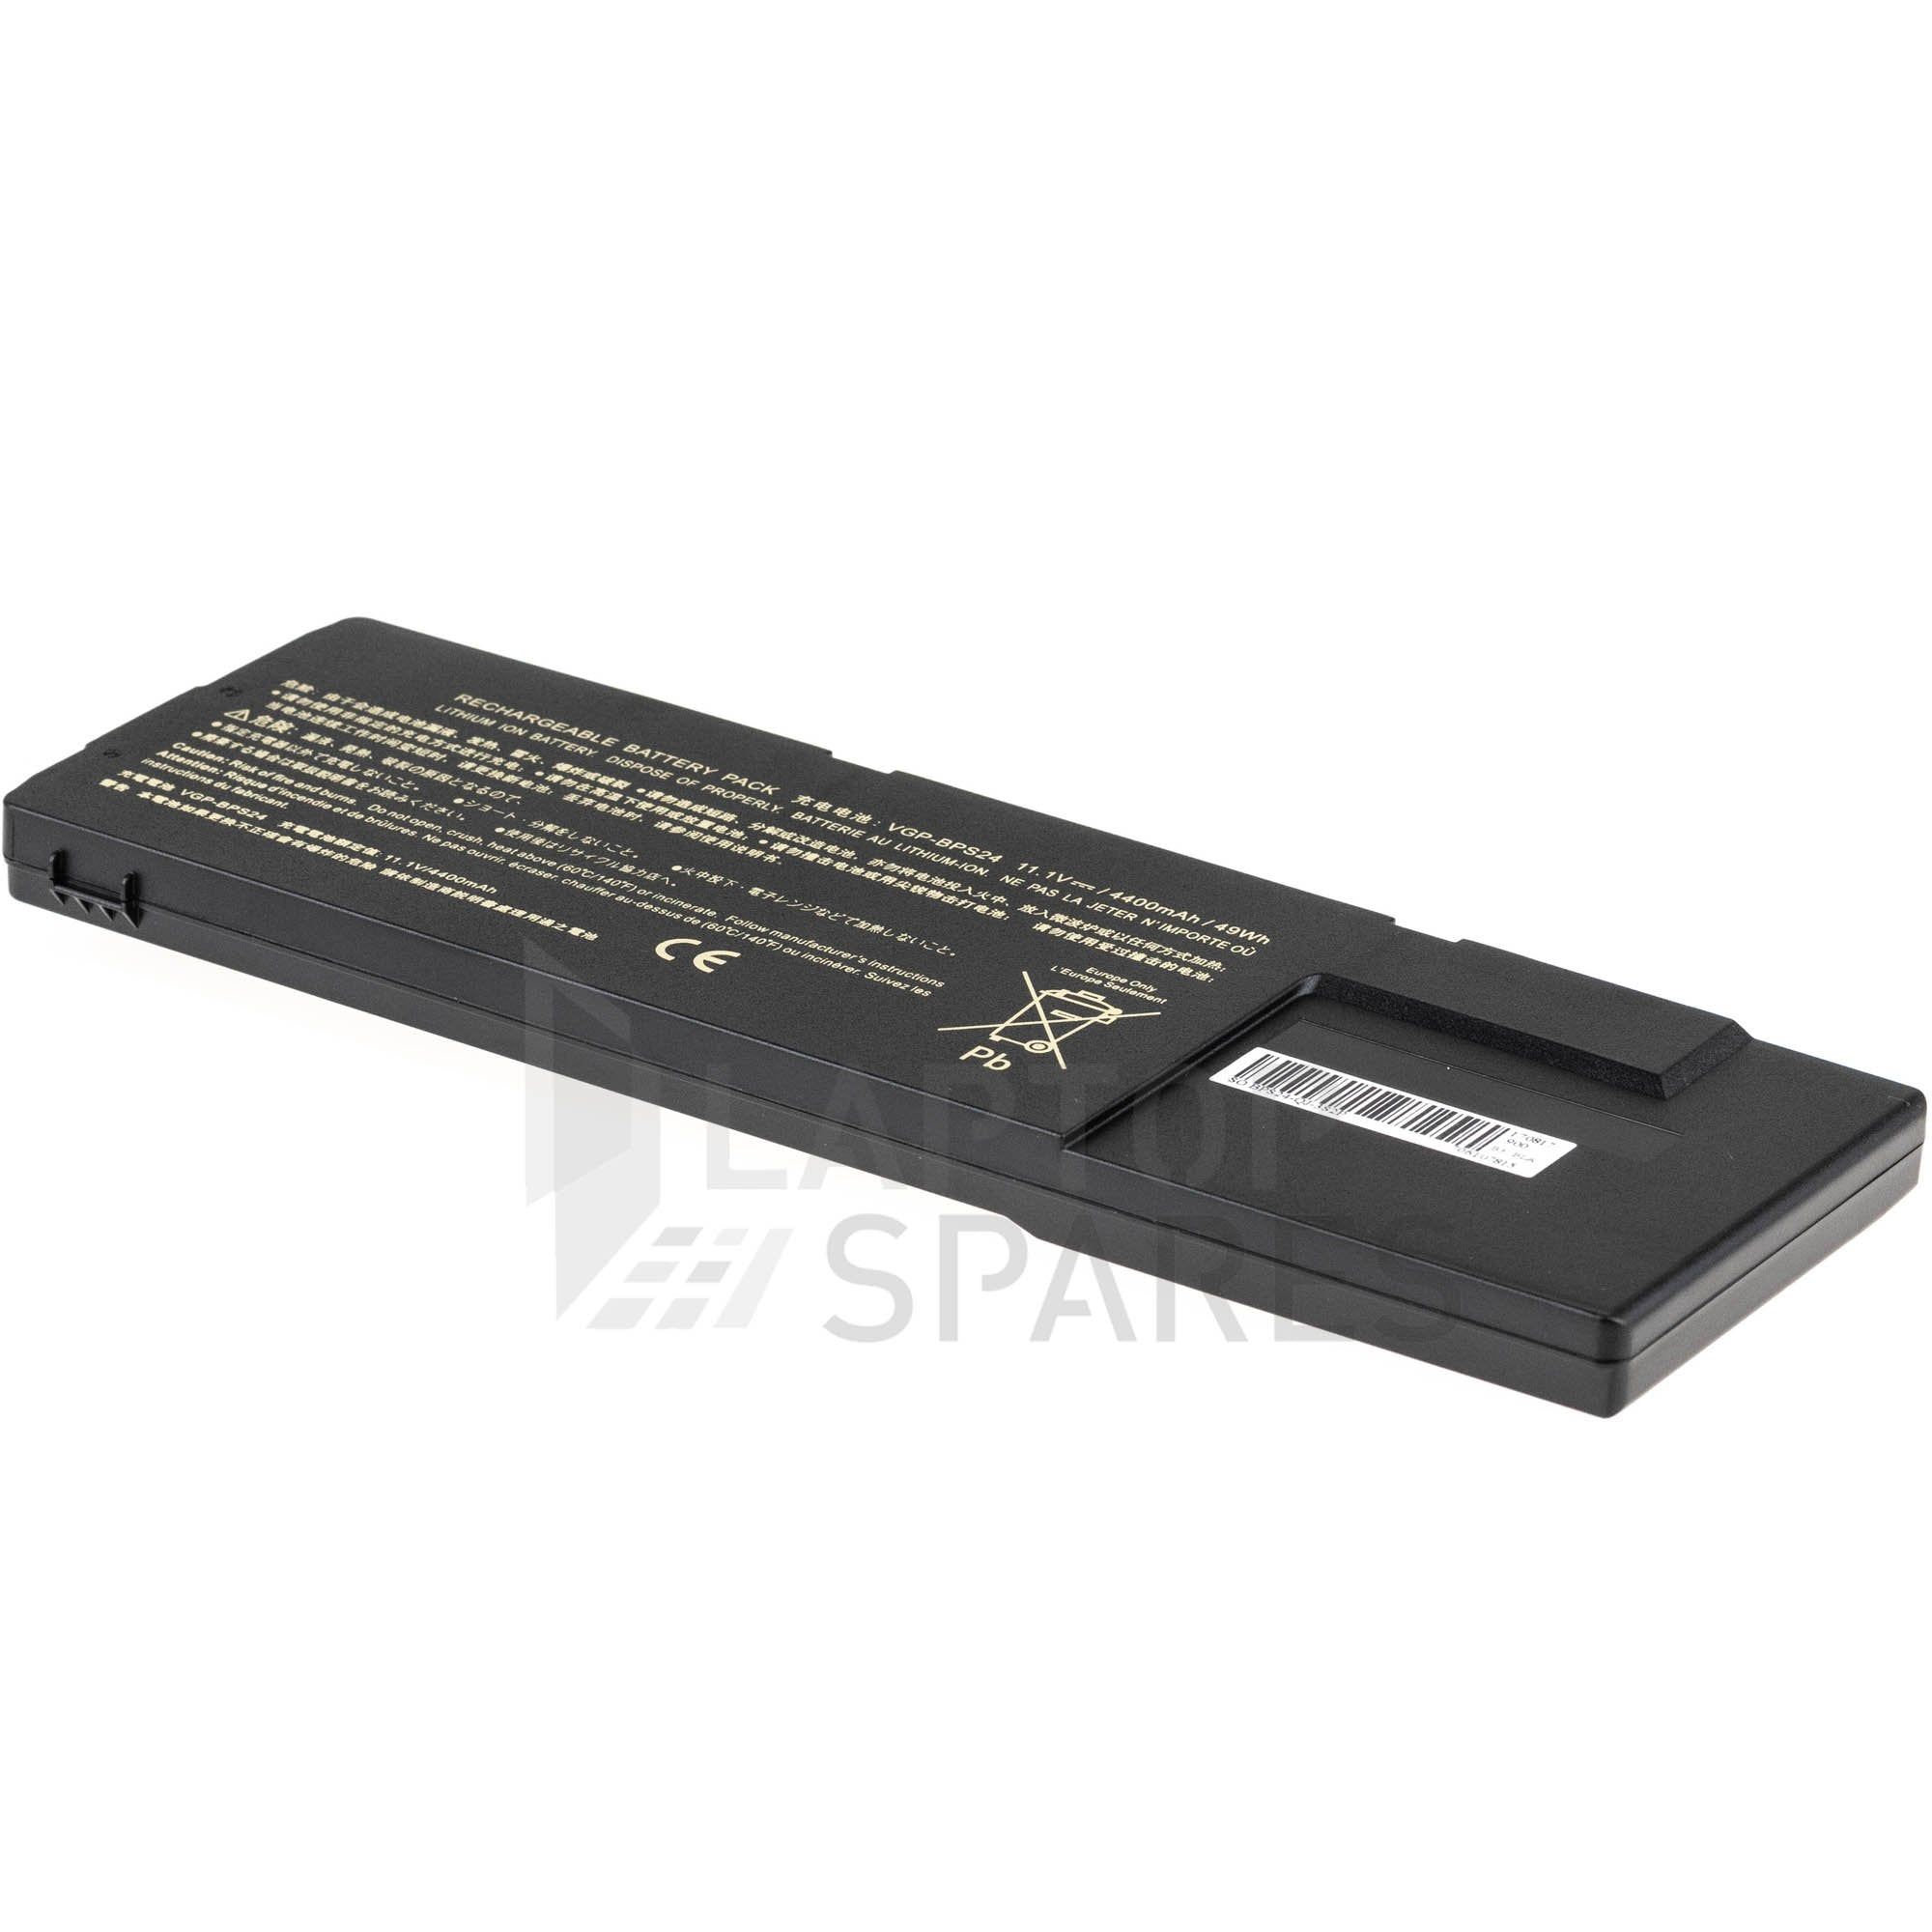 Sony Vaio VPC SB4S9E SB4V9E 4400mAh 6 Cell Battery